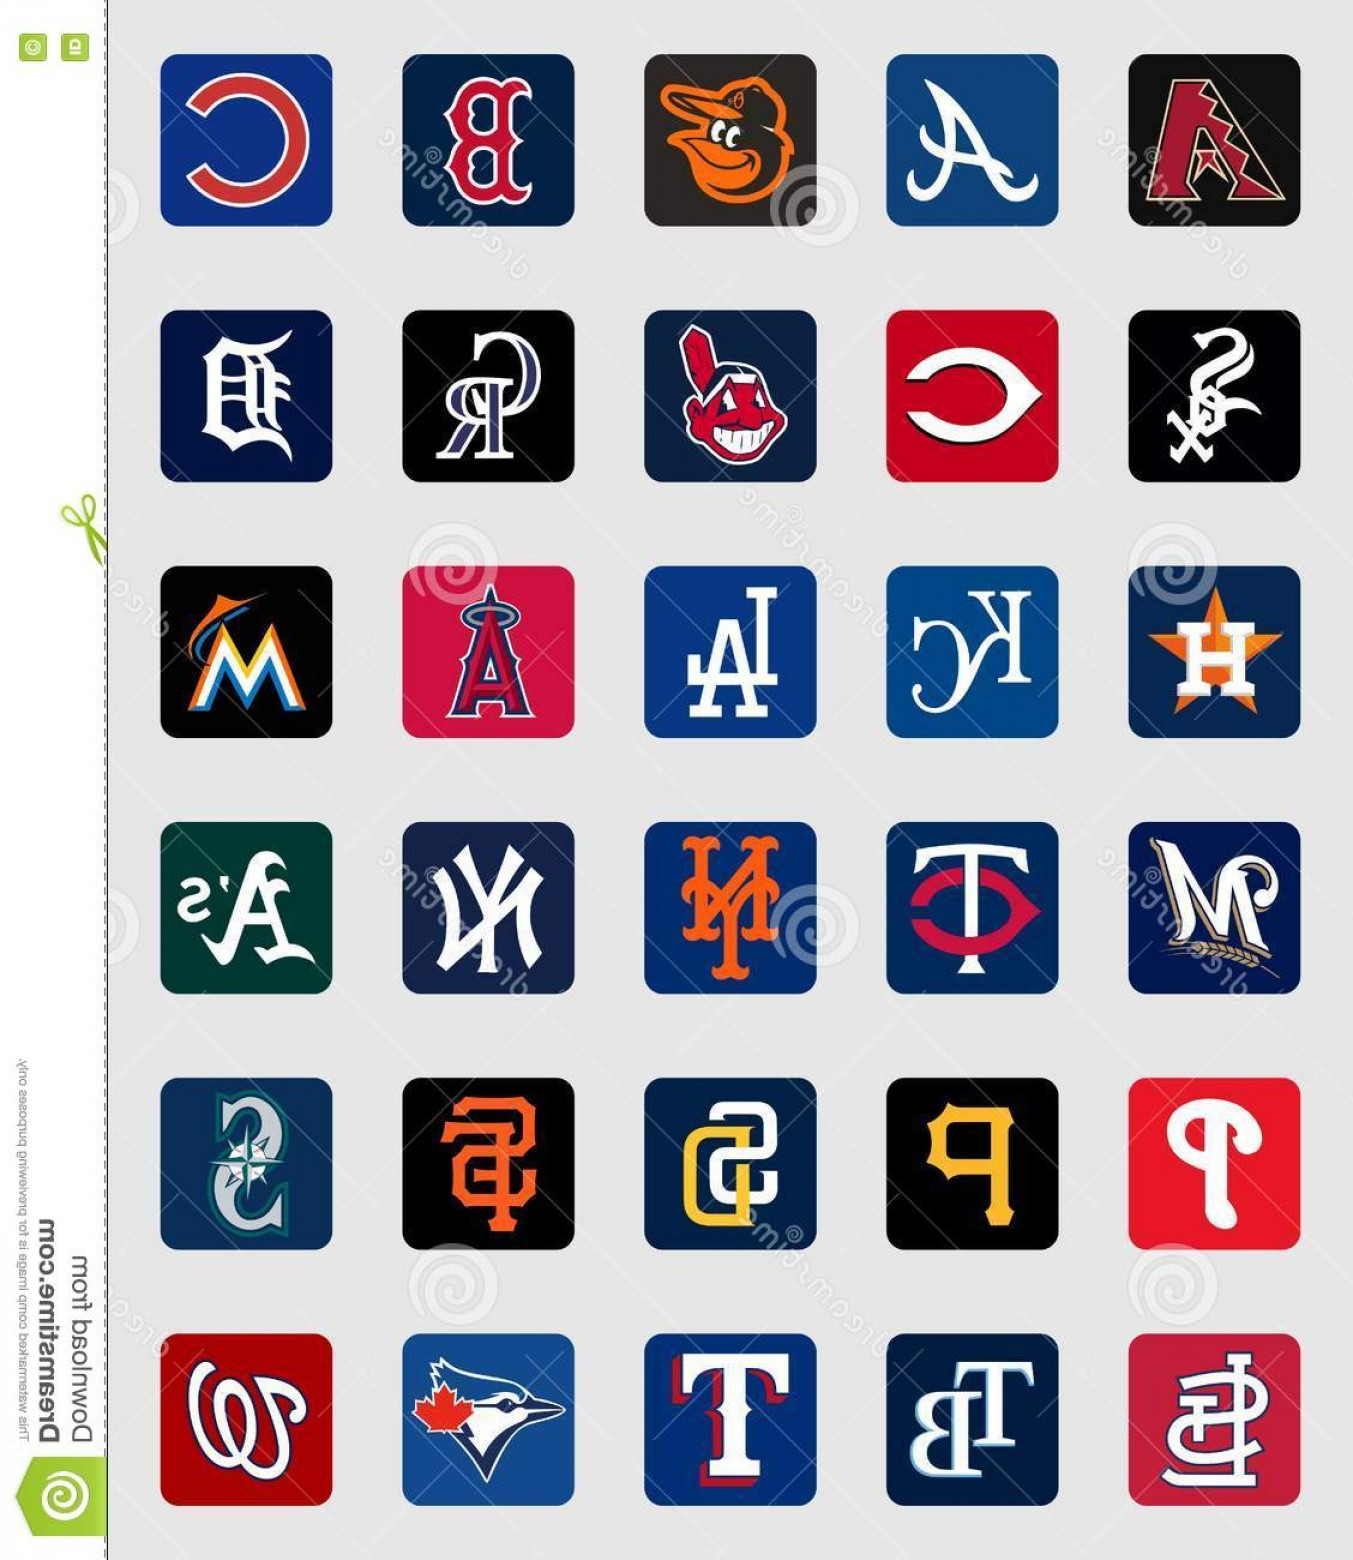 National League Baseball Logo Vector: Editorial Photo Major League Baseball Cap Insignia Logos High Quality Vector Collection Teams Eps File Available N Image